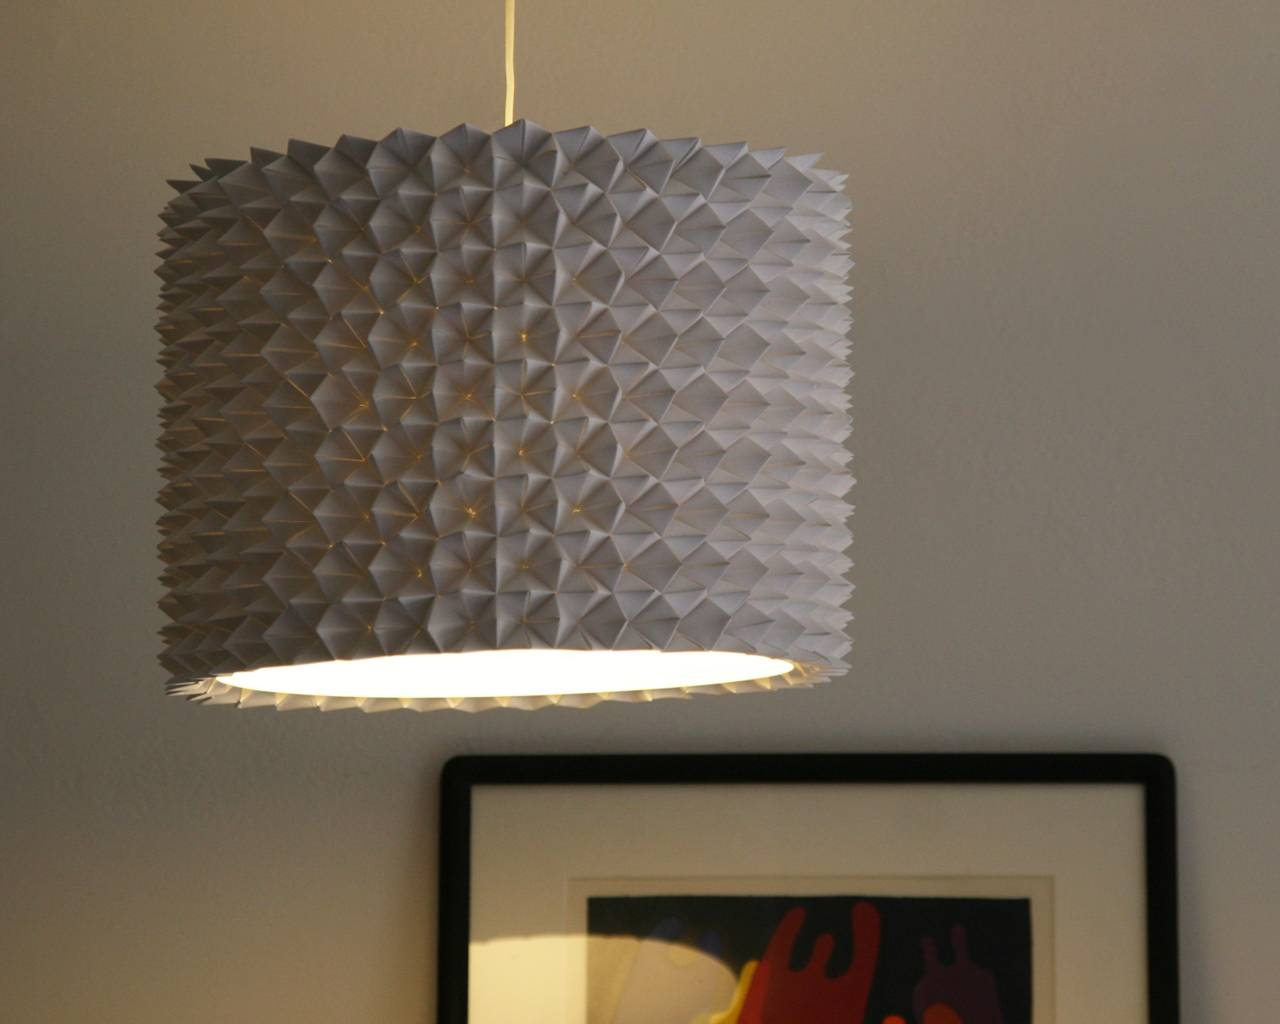 Faceted Pendant Lights – The Large Drum Shade | The 3 R's Blog Inside Rectangular Drum Pendant Lights (View 11 of 15)